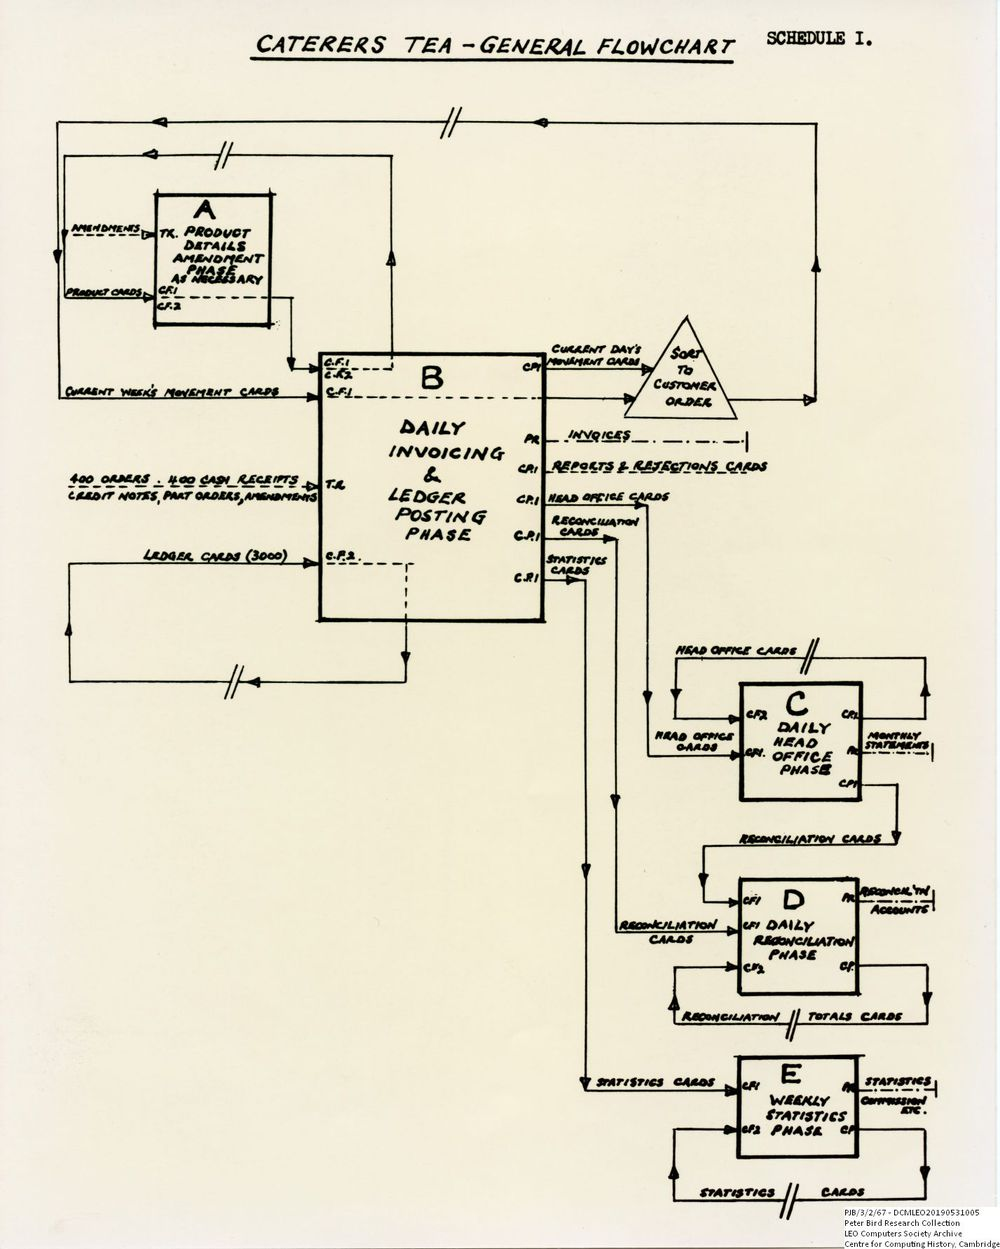 Scan of Document: 60770  Part of the System Flowchart for LEO job L22